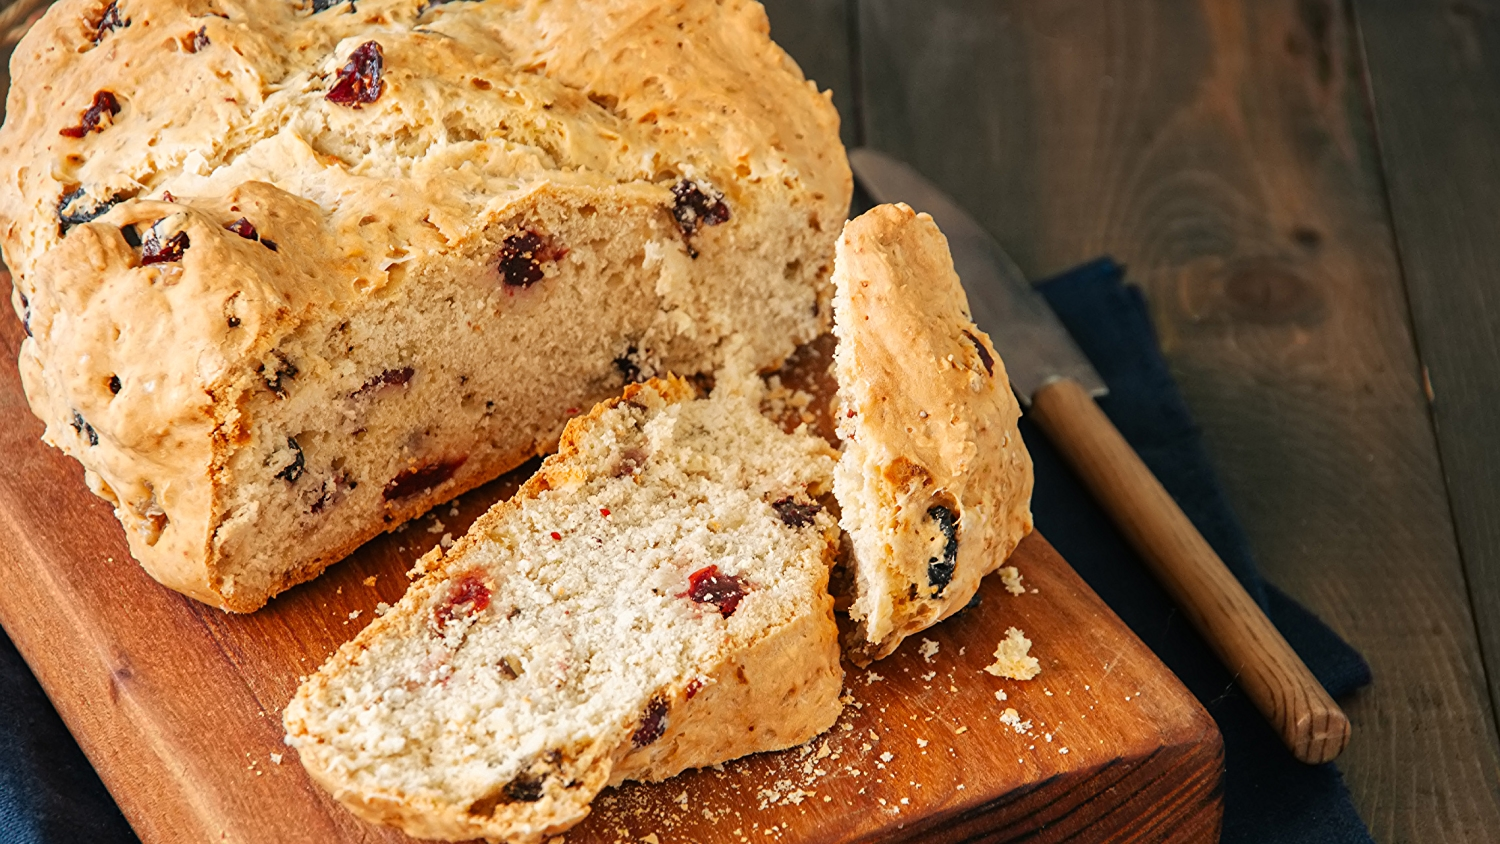 Image is of a loaf of bread with dried fruit in it.